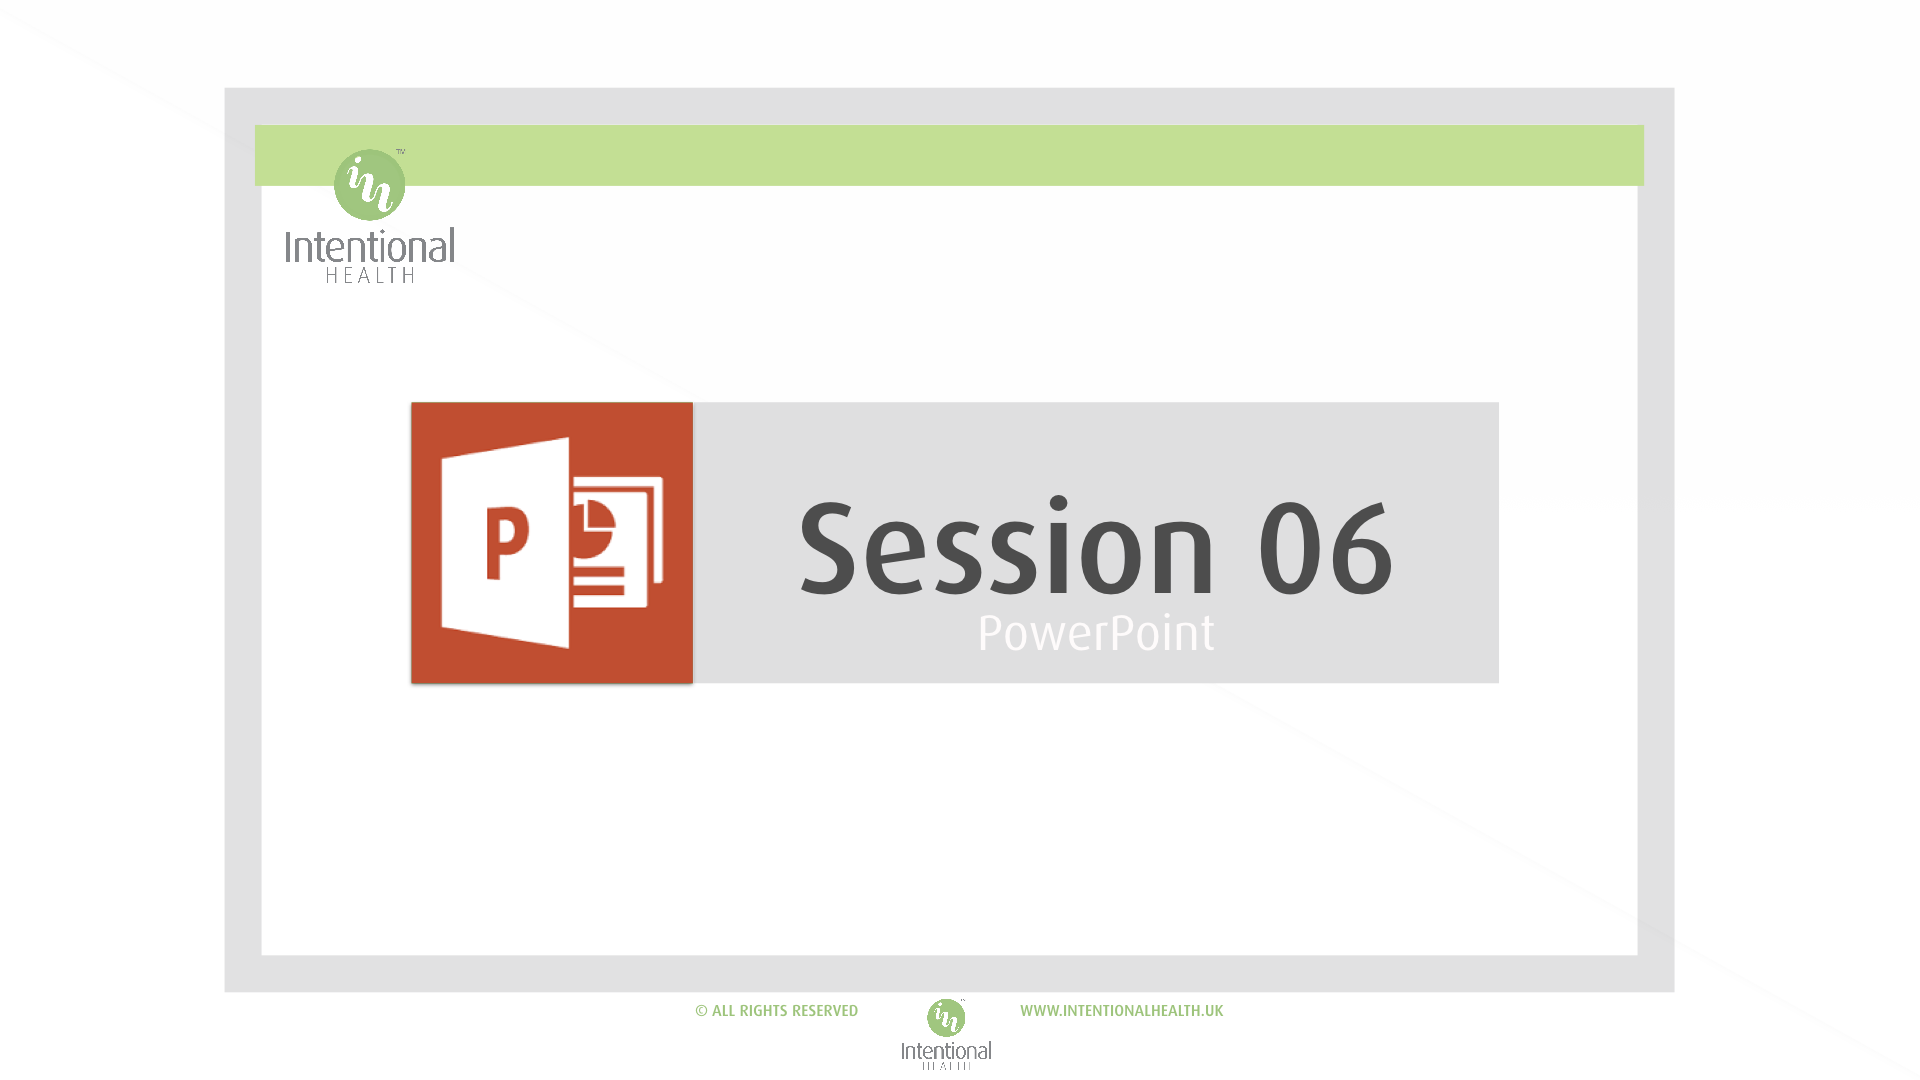 Session 06 Powerpoint